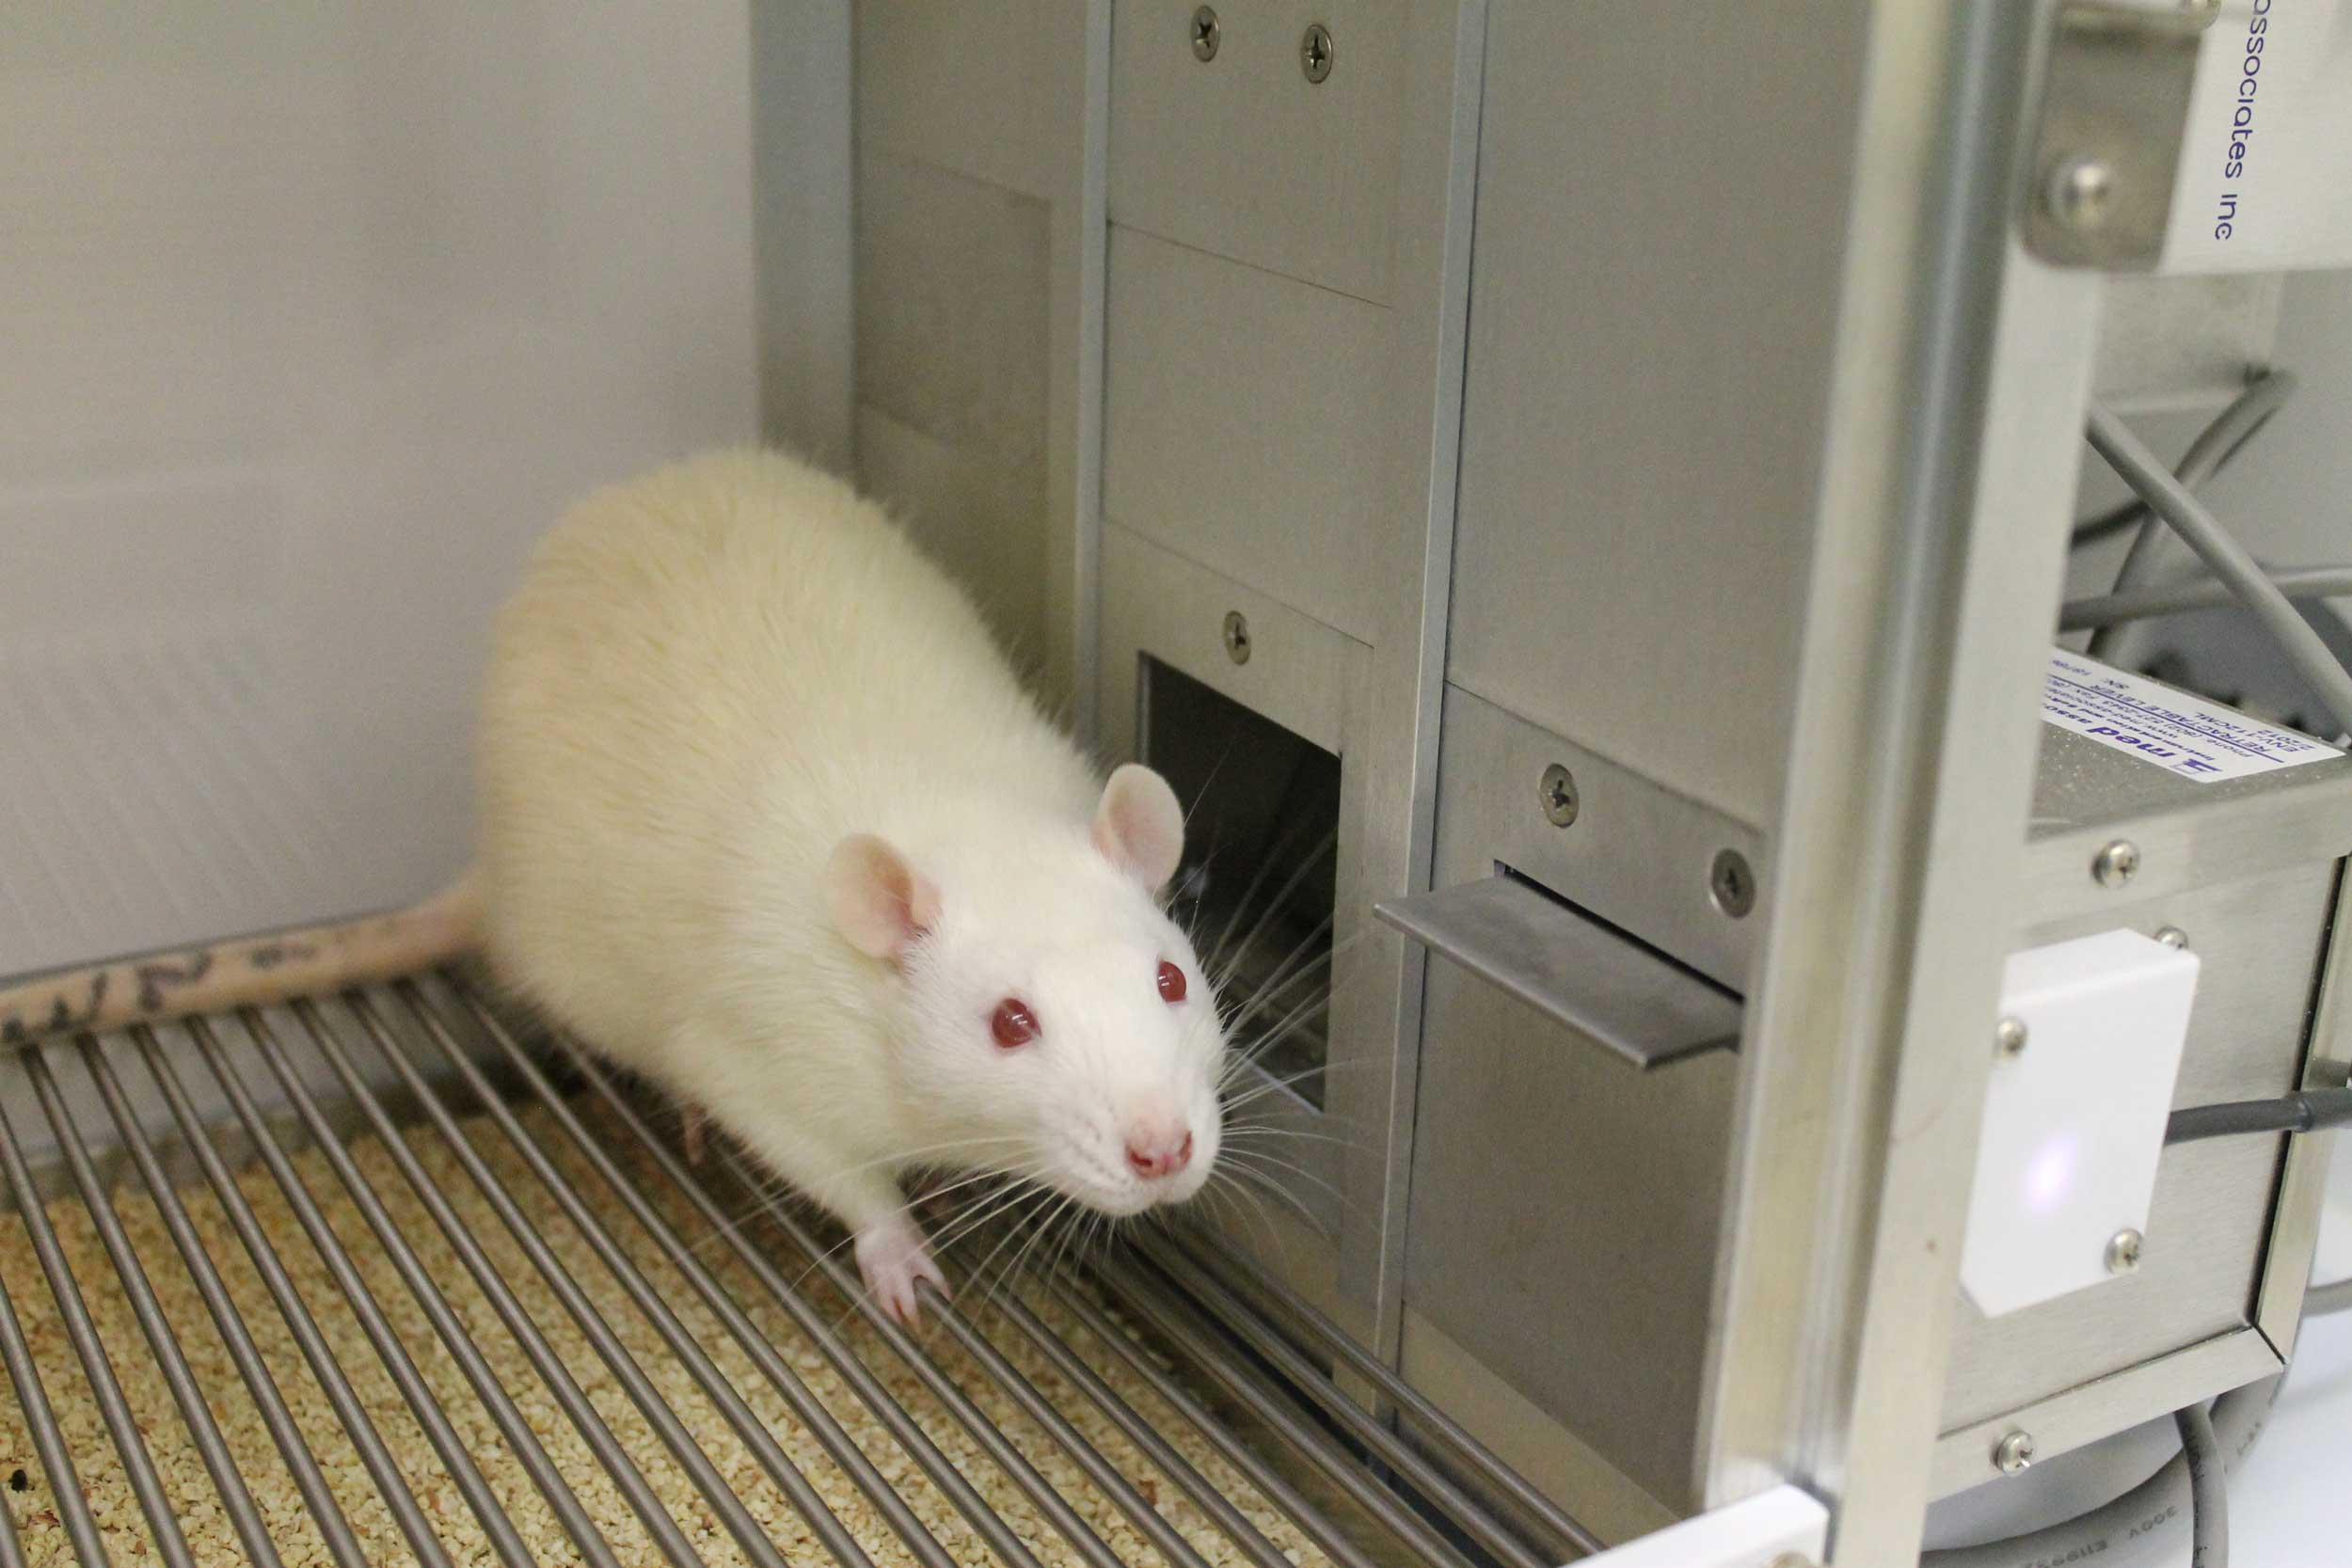 Researchers at the University of Michigan and The Open University in England studied how male rats solved increasingly difficult puzzles to receive a cocaine reward. This concept differs from other studies in which rats and other animals repeat the same behavior, such as pressing a lever or poking their noses through a port, to get the drugs. Image courtesy: Bryan Singer